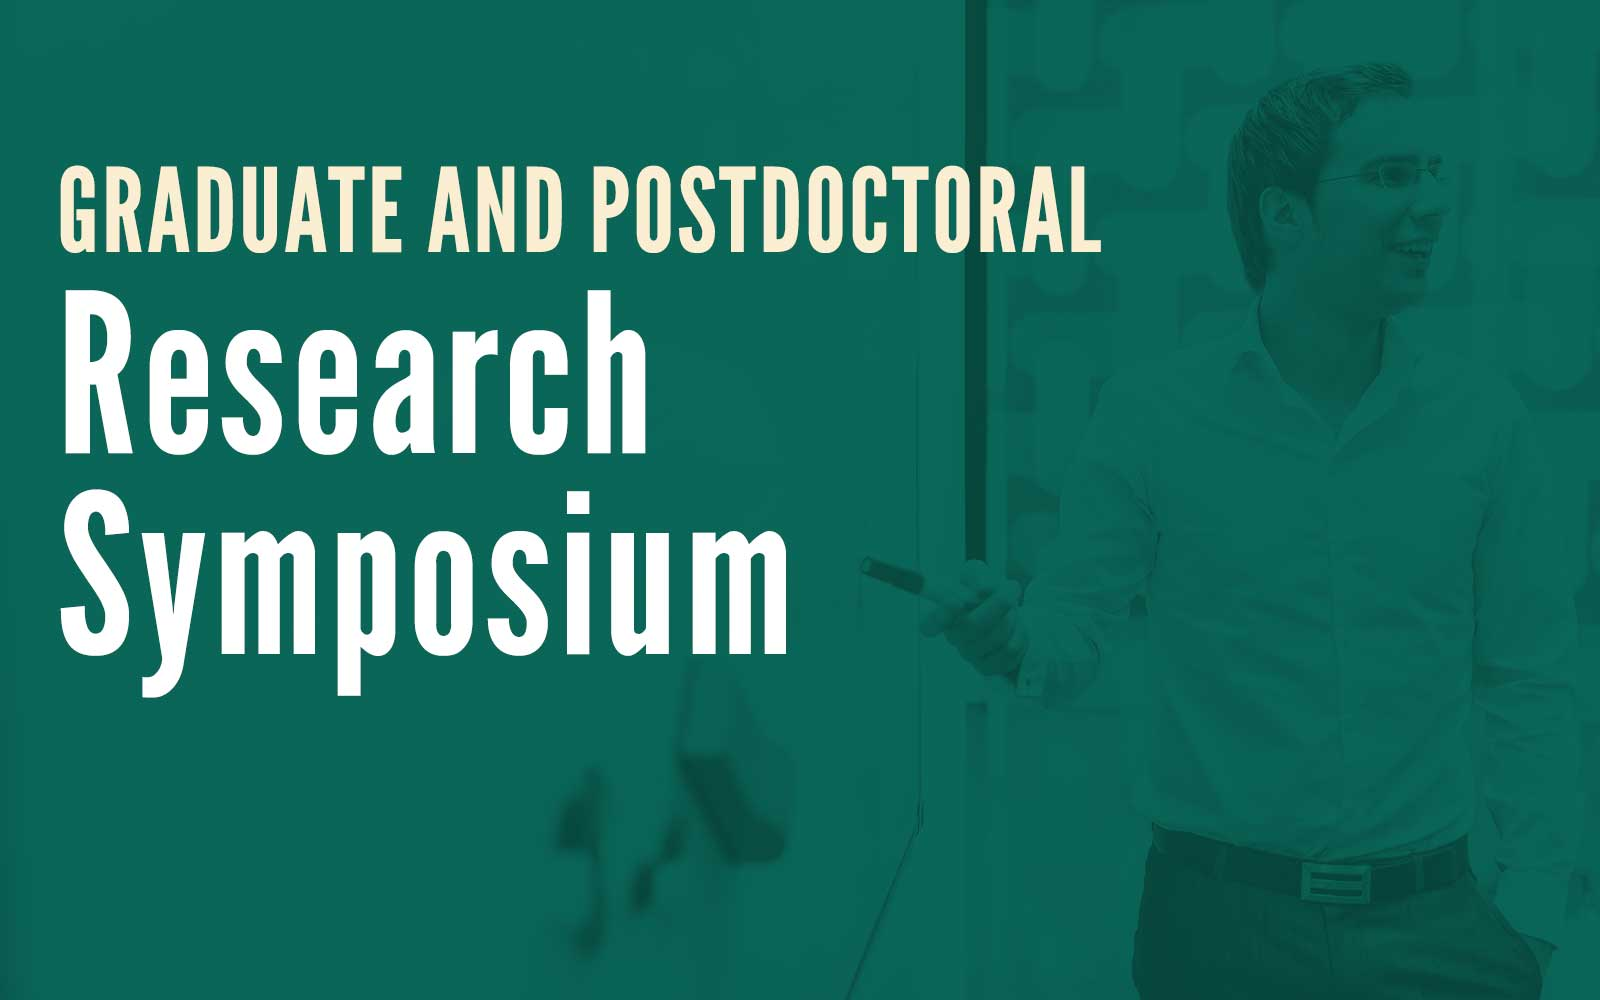 March 8: Graduate and Postdoctoral Research Symposium